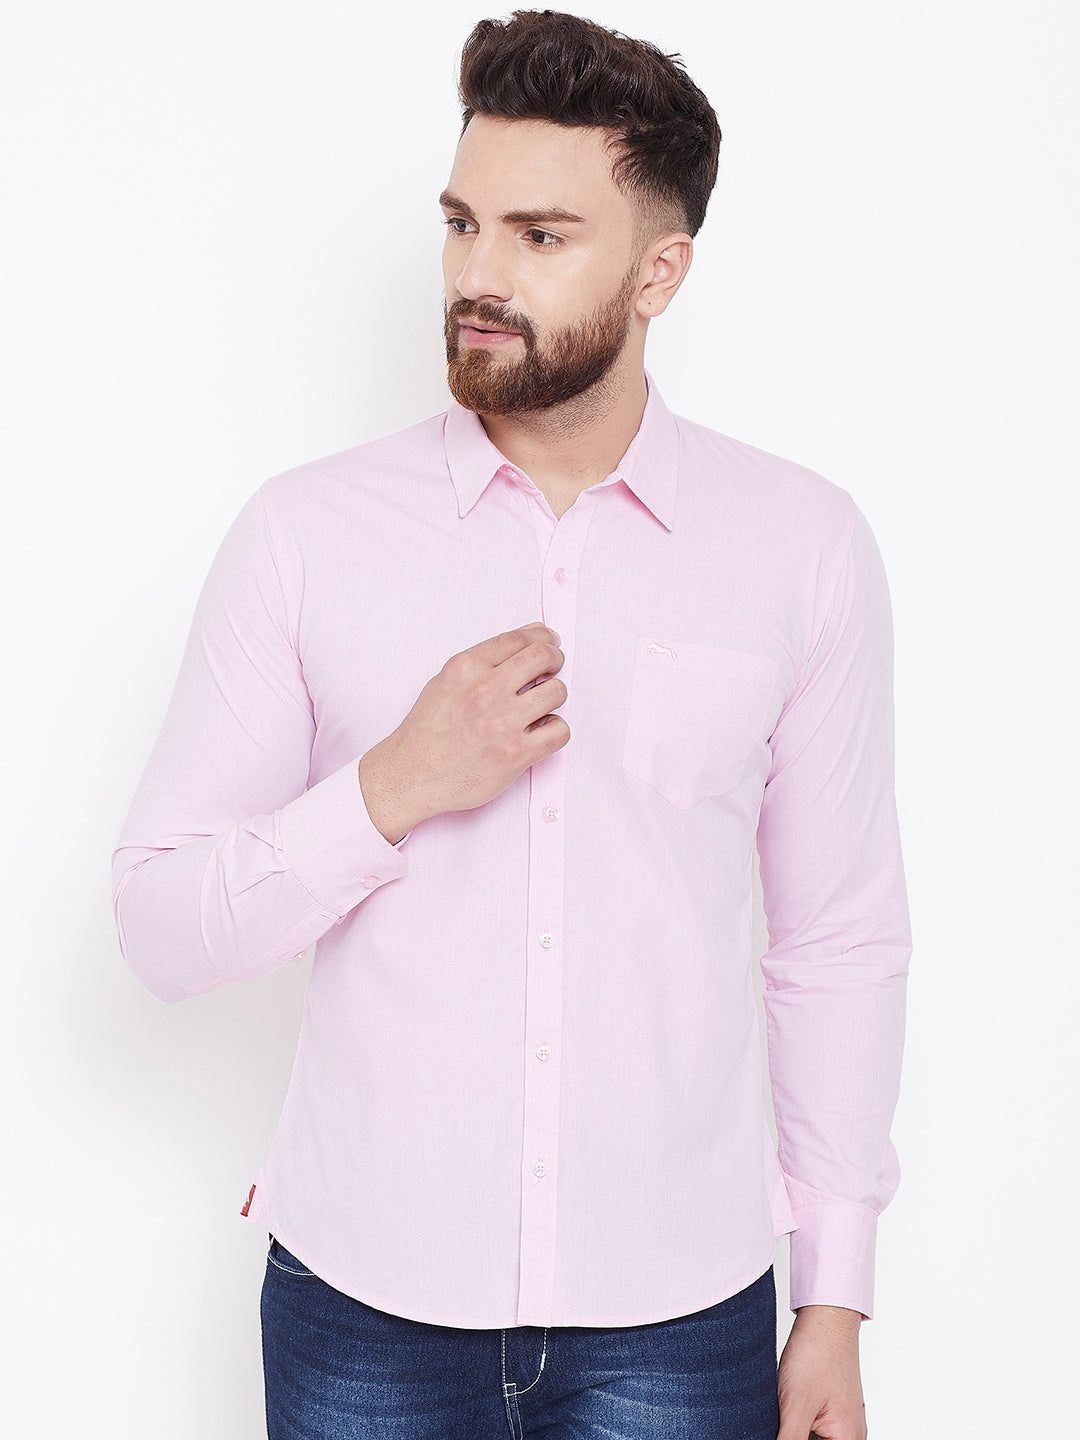 JUMP USA Men Pink Solid Regular Fit Casual Shirts - JUMP USA